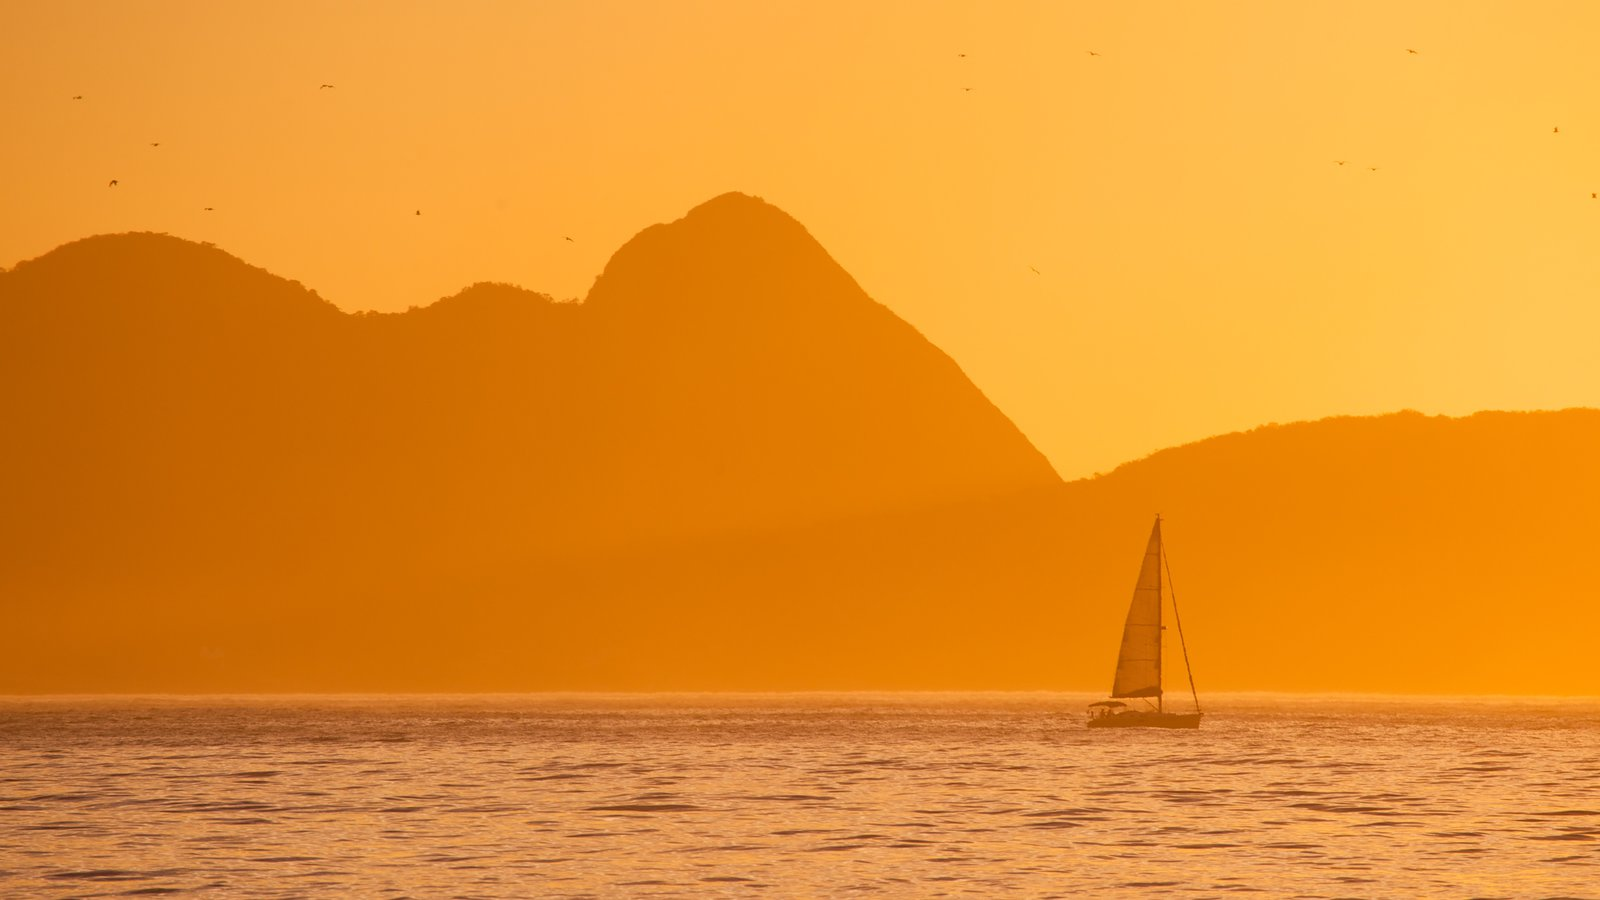 Copacabana Beach featuring general coastal views, sailing and a sunset